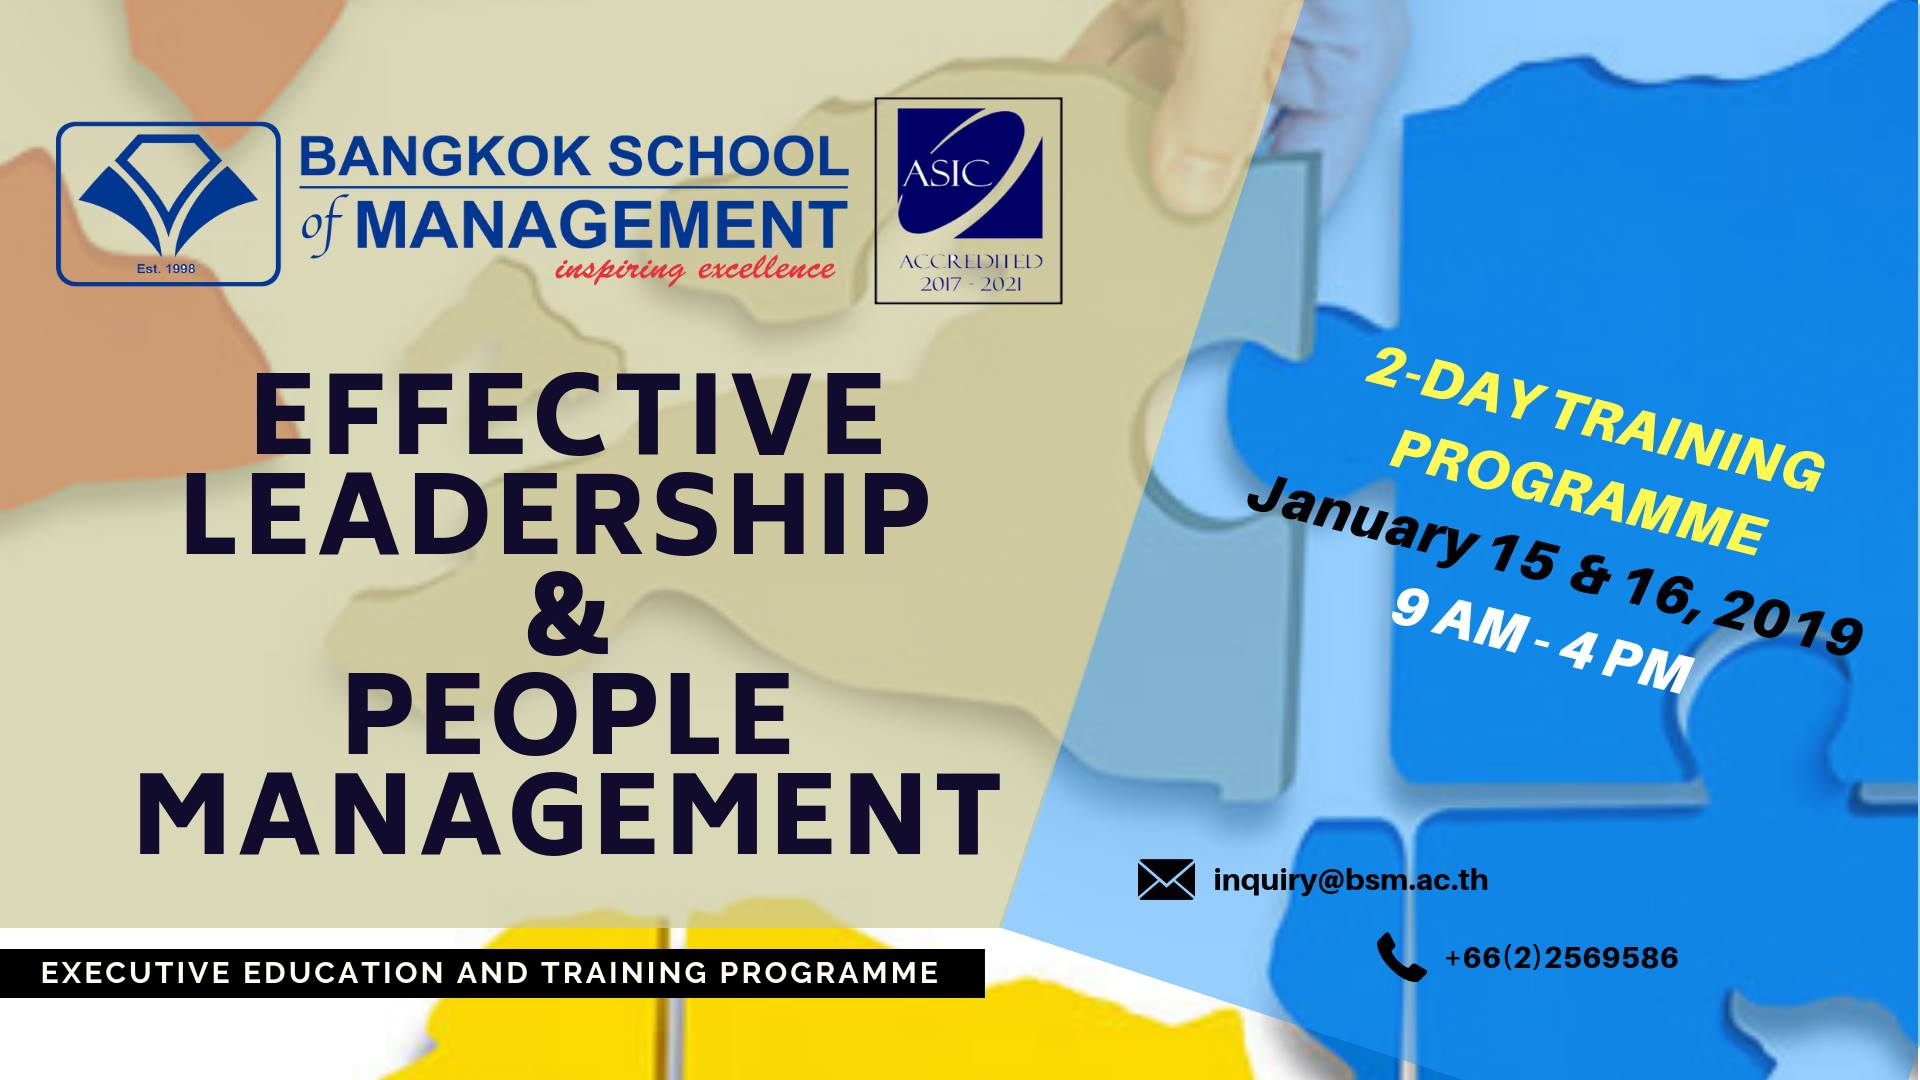 Date: January 15 & 16, 2019  Effective Leadership & People Management